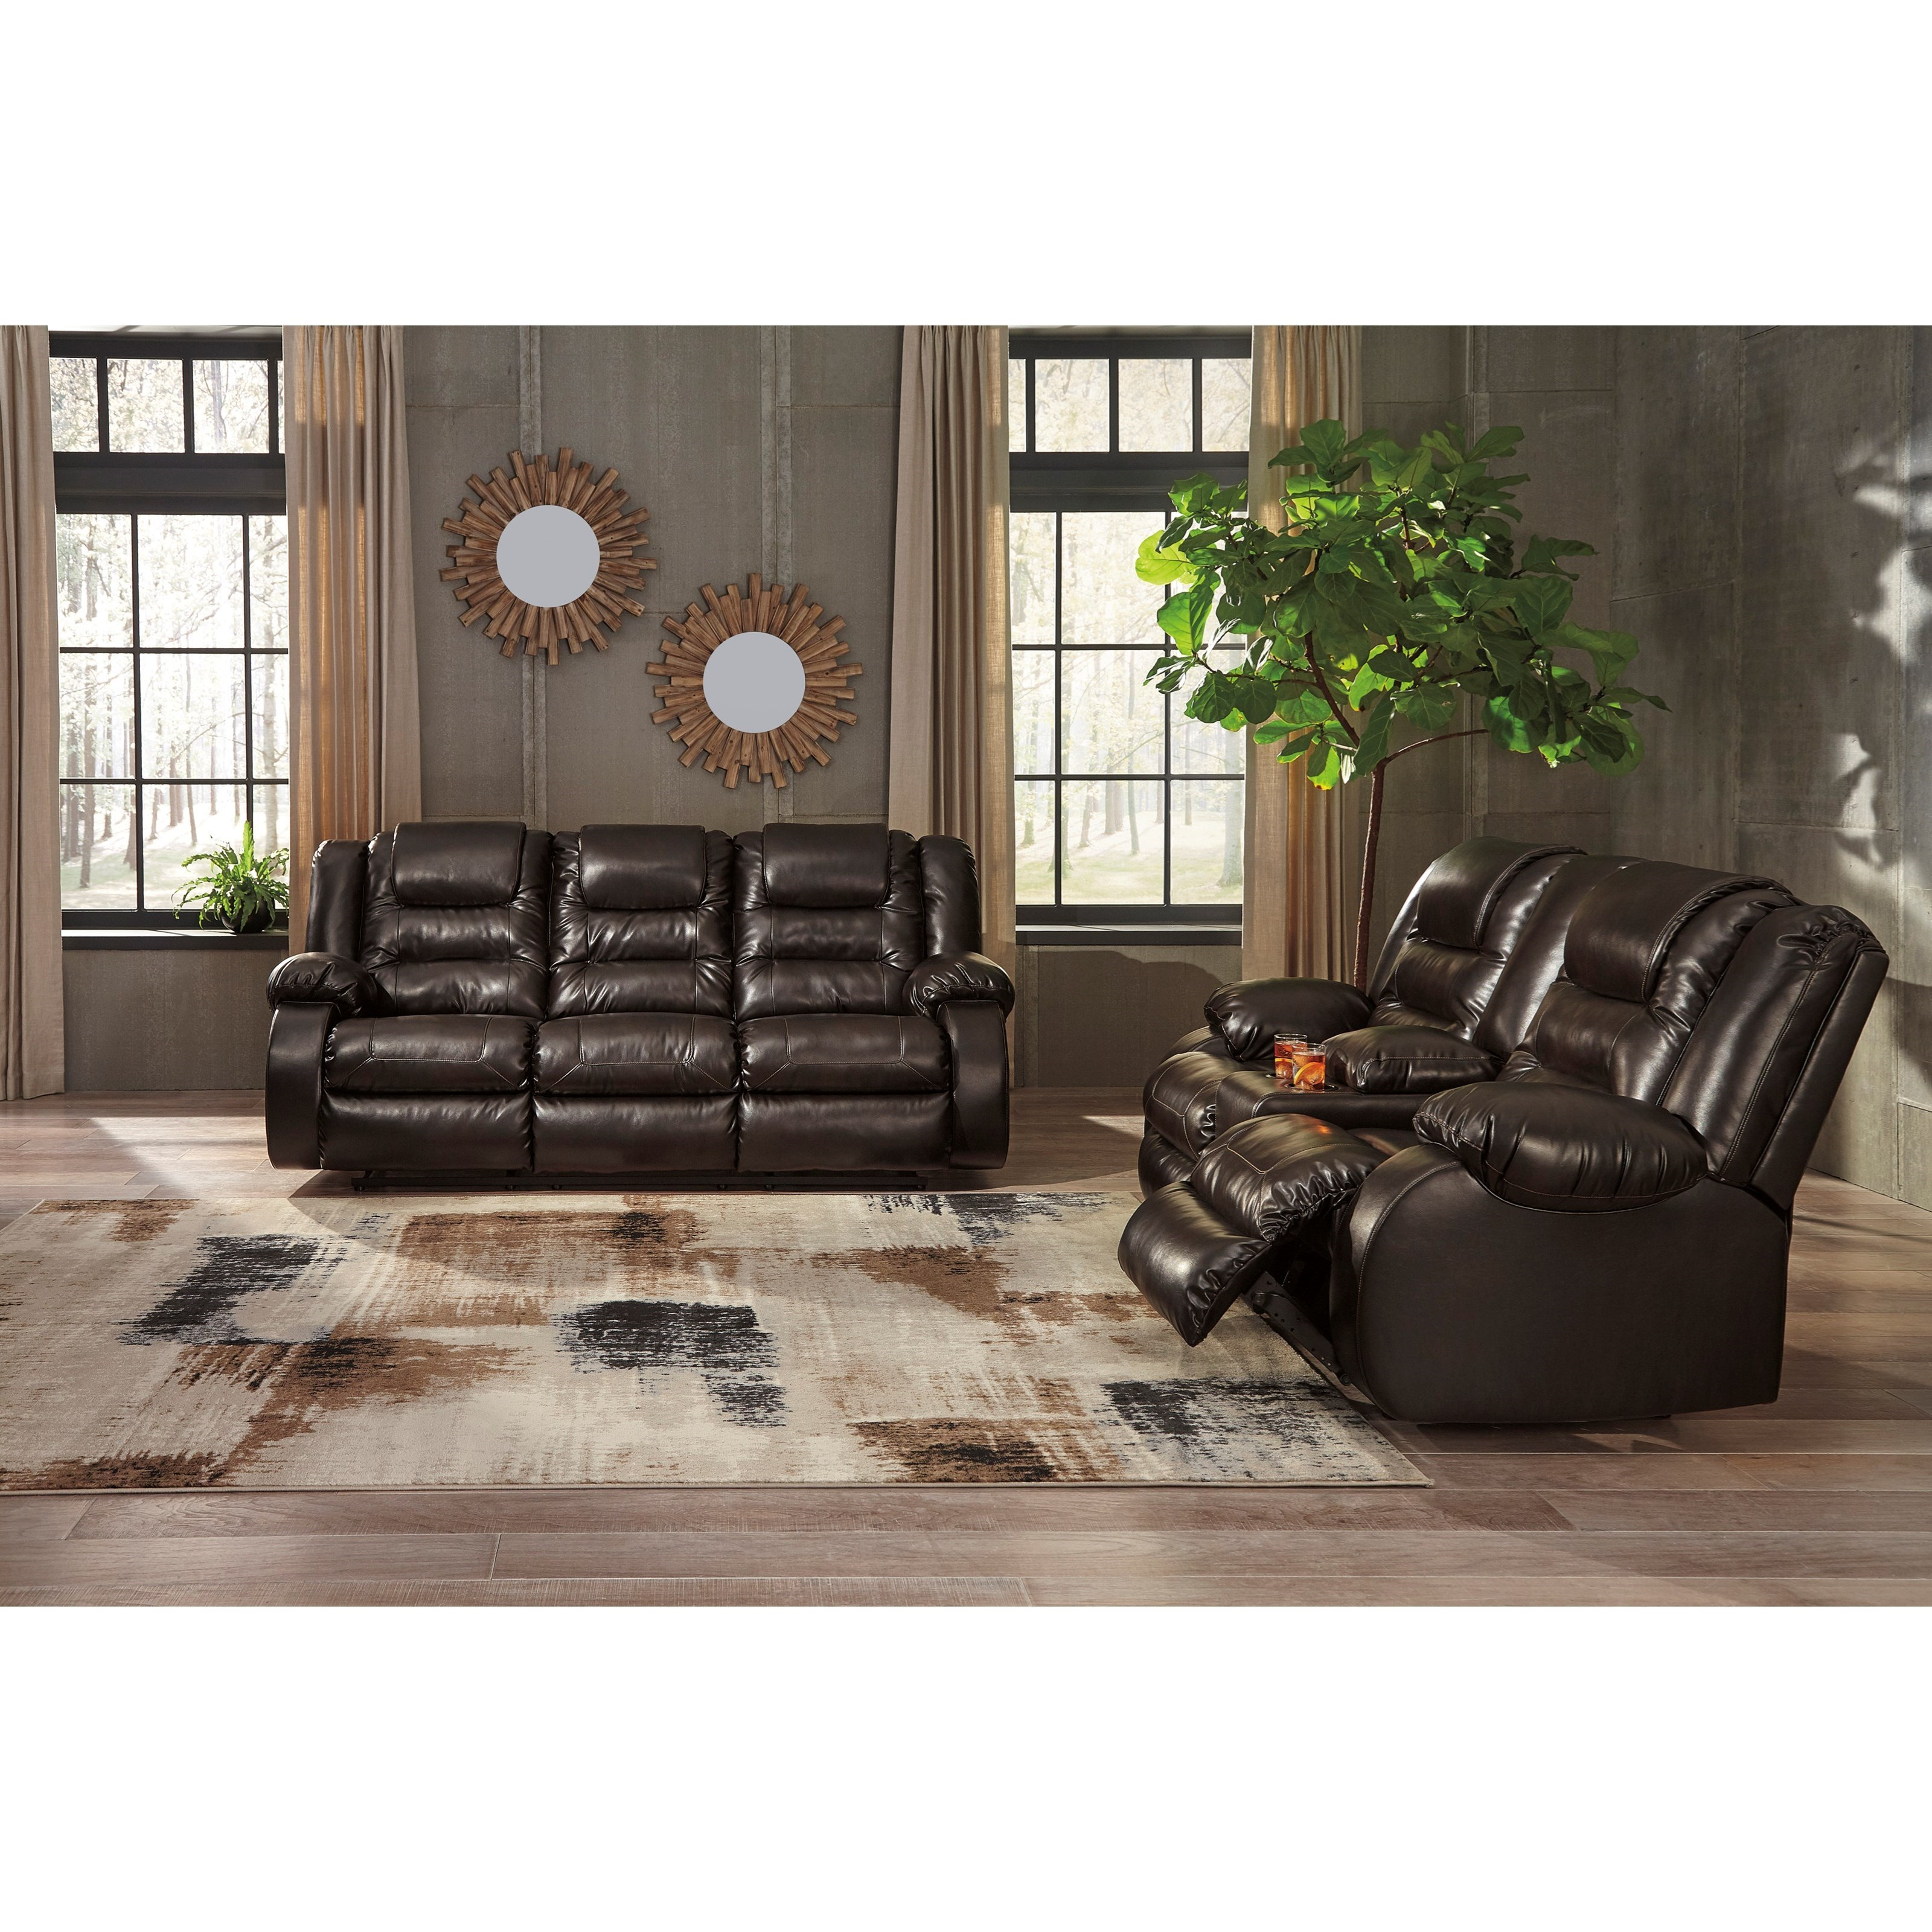 ashley living room harley davidson themed signature design by vacherie reclining group vacheriereclining